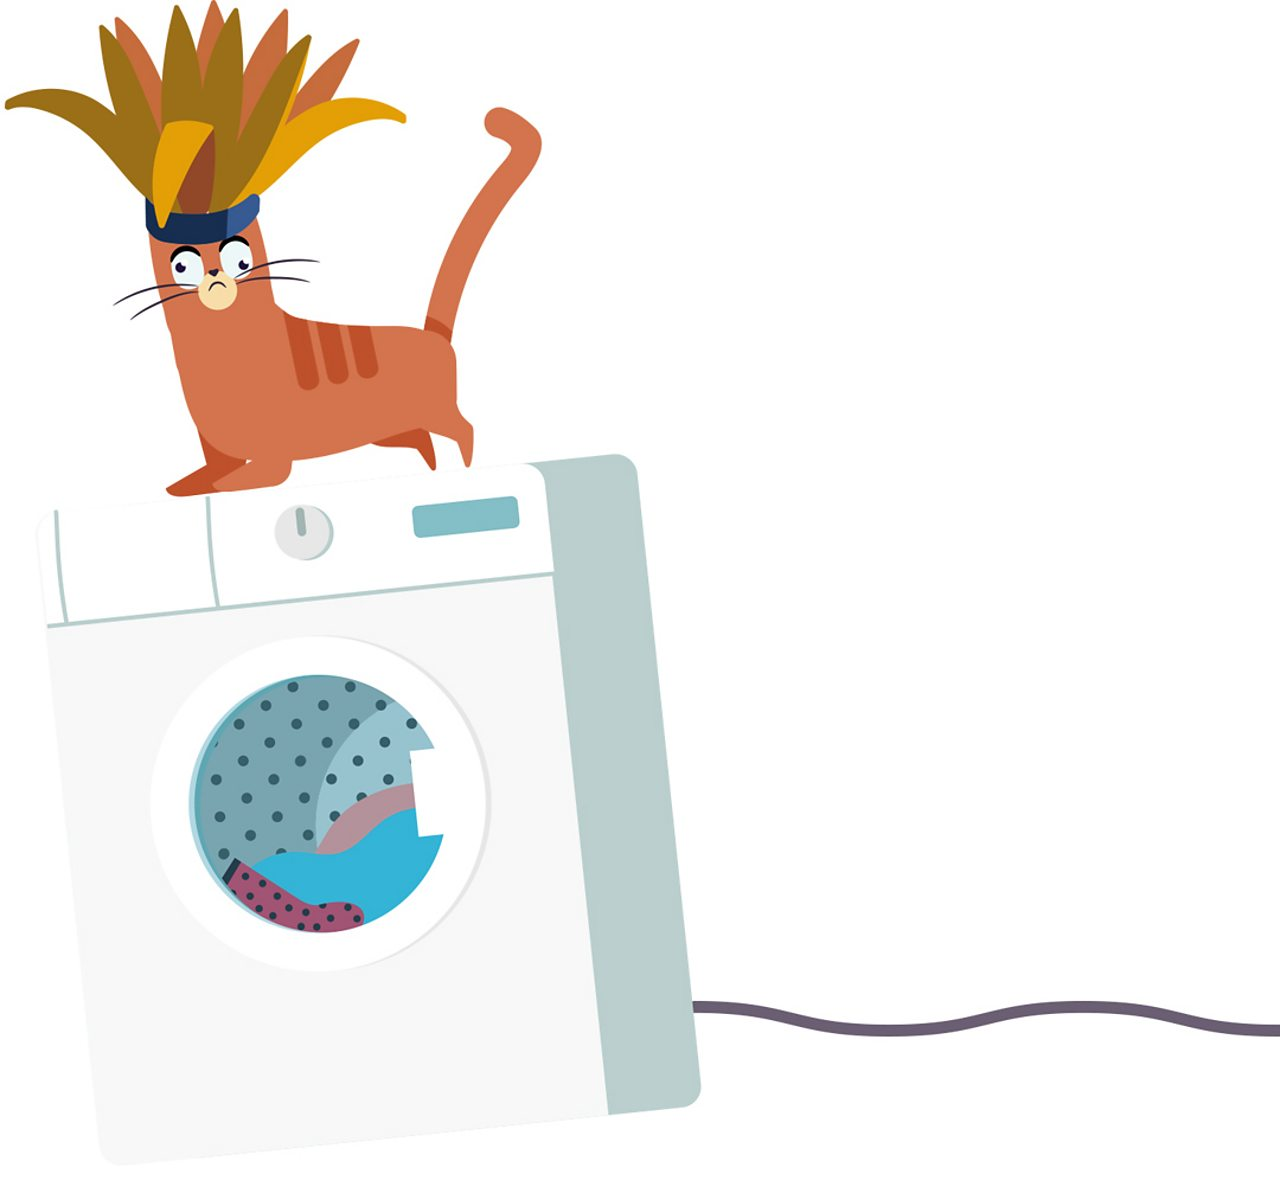 Chippy the cat wearing a carnival headdress on top of a washing machine